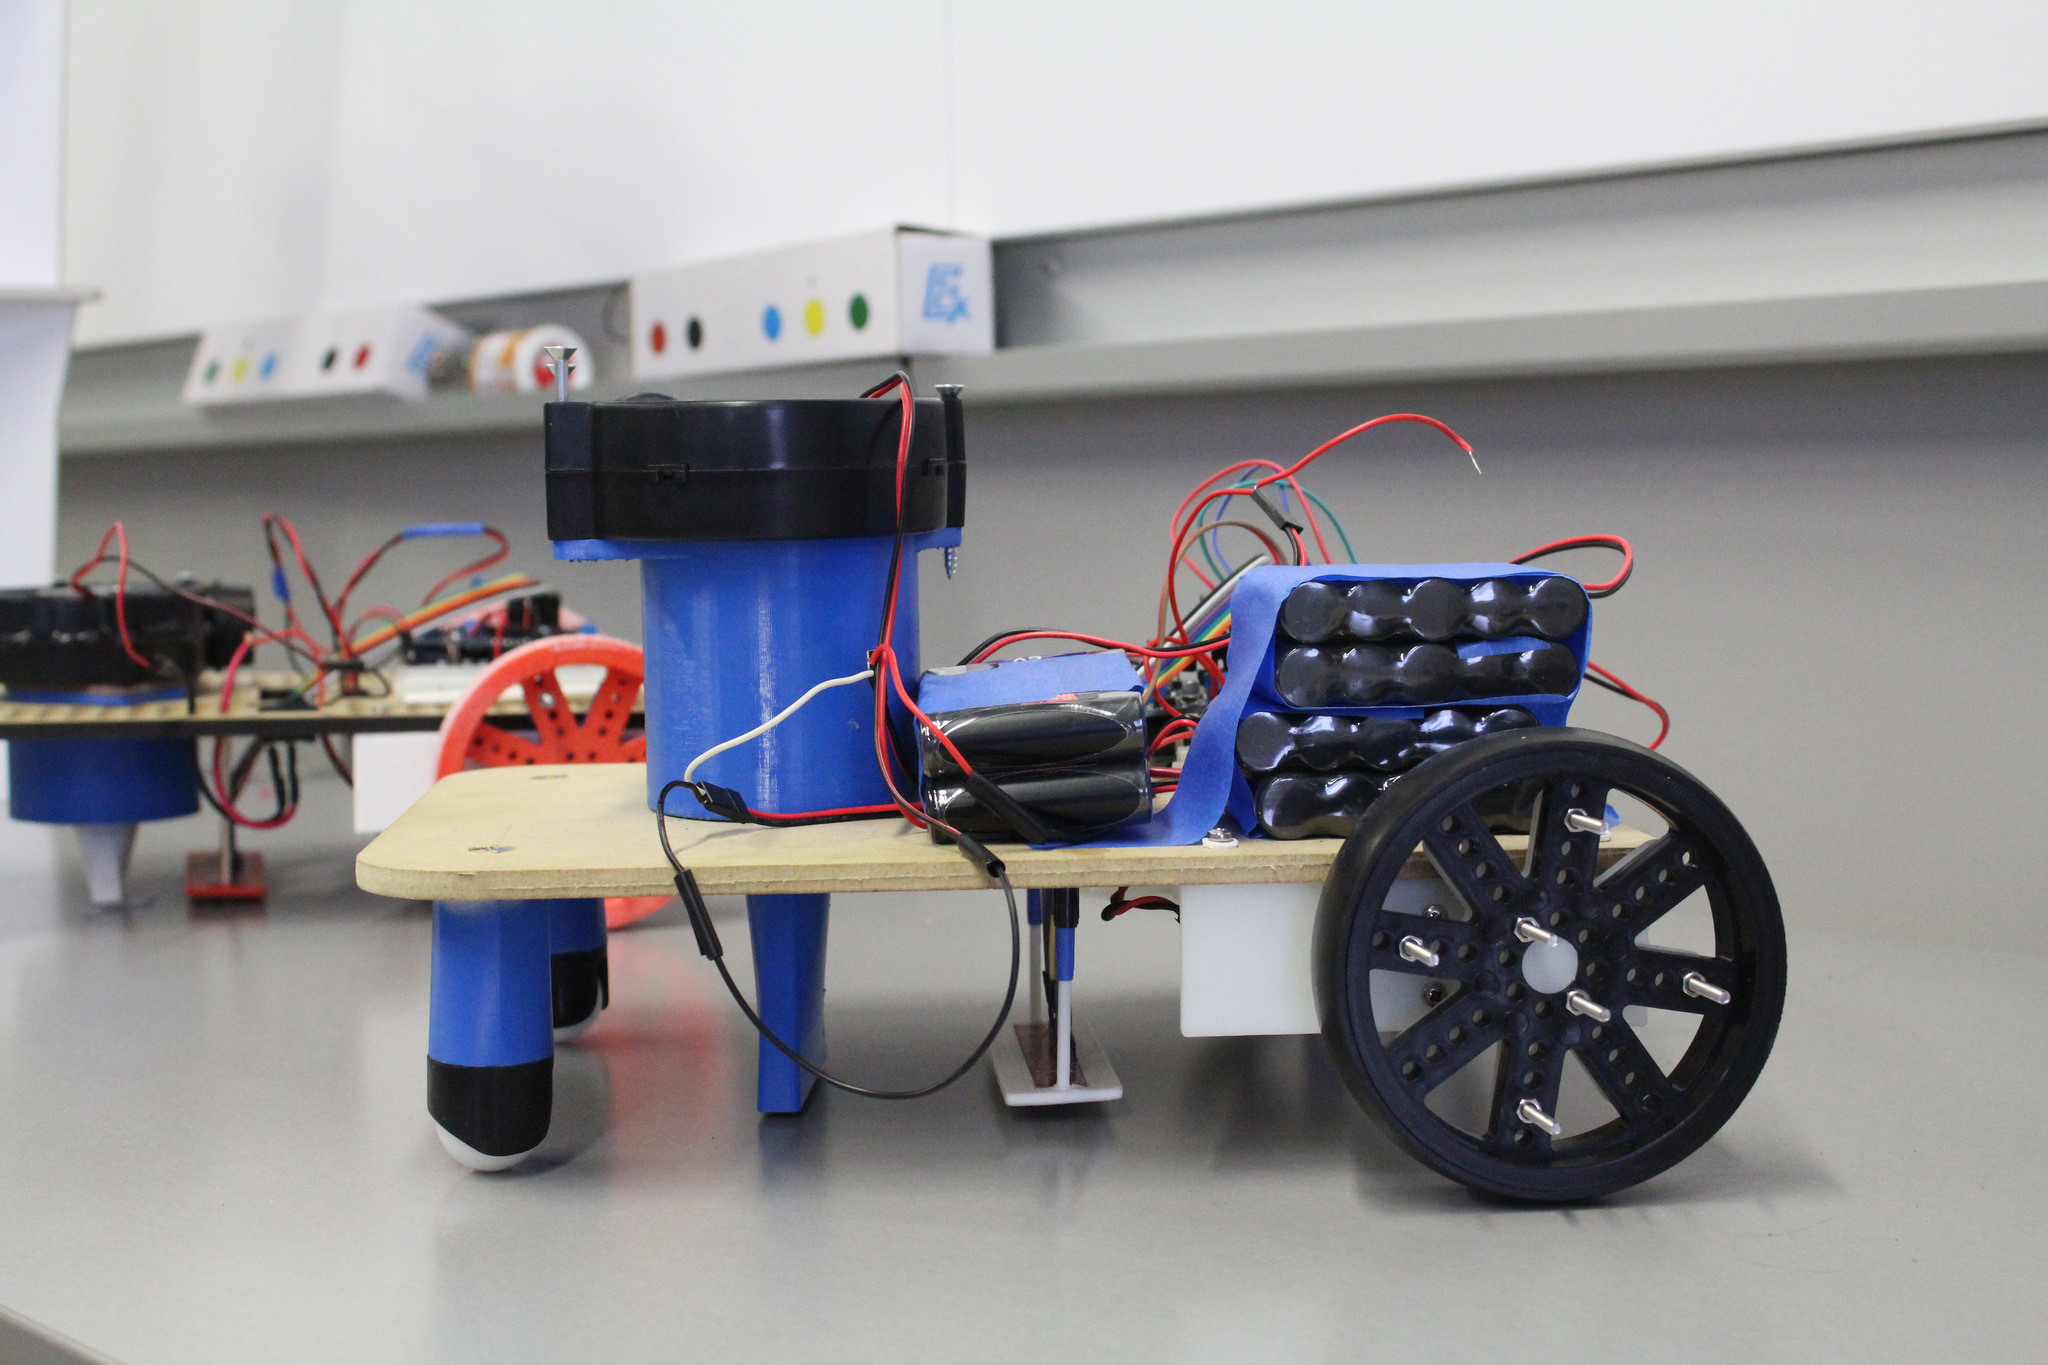 Make1 prototyping program at The Idea Center showcases the importance of well-designed hardware